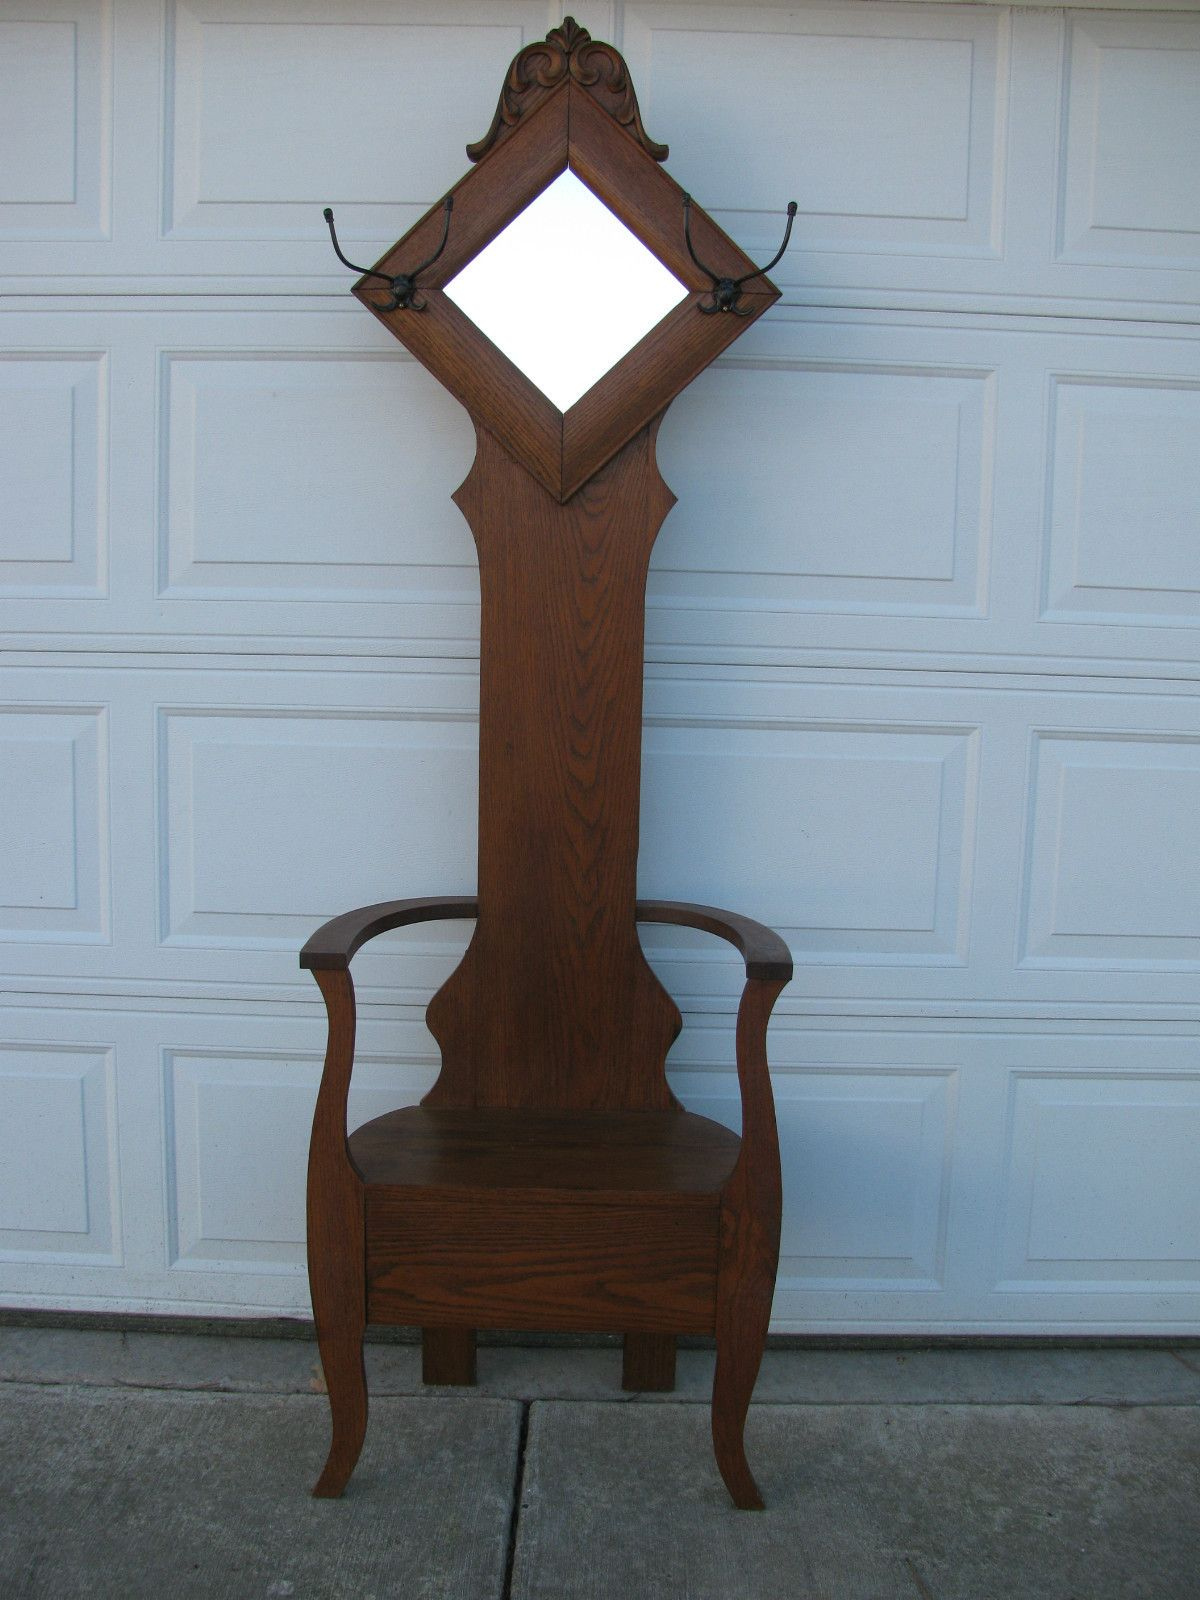 Details About Antique Hall Seat Coat Tree Stand With Beveled Mirror Storage Bench Oak Rare